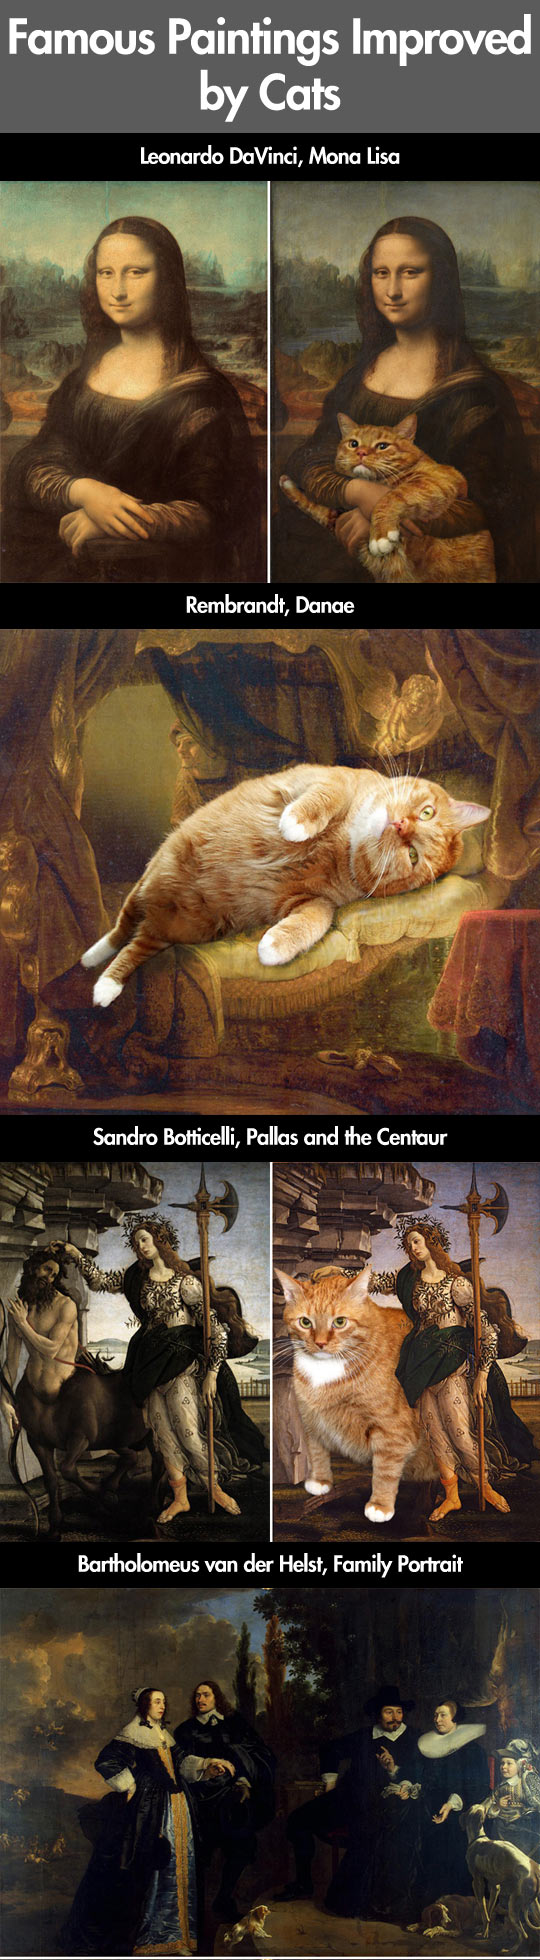 Paintings Improved by Cats...